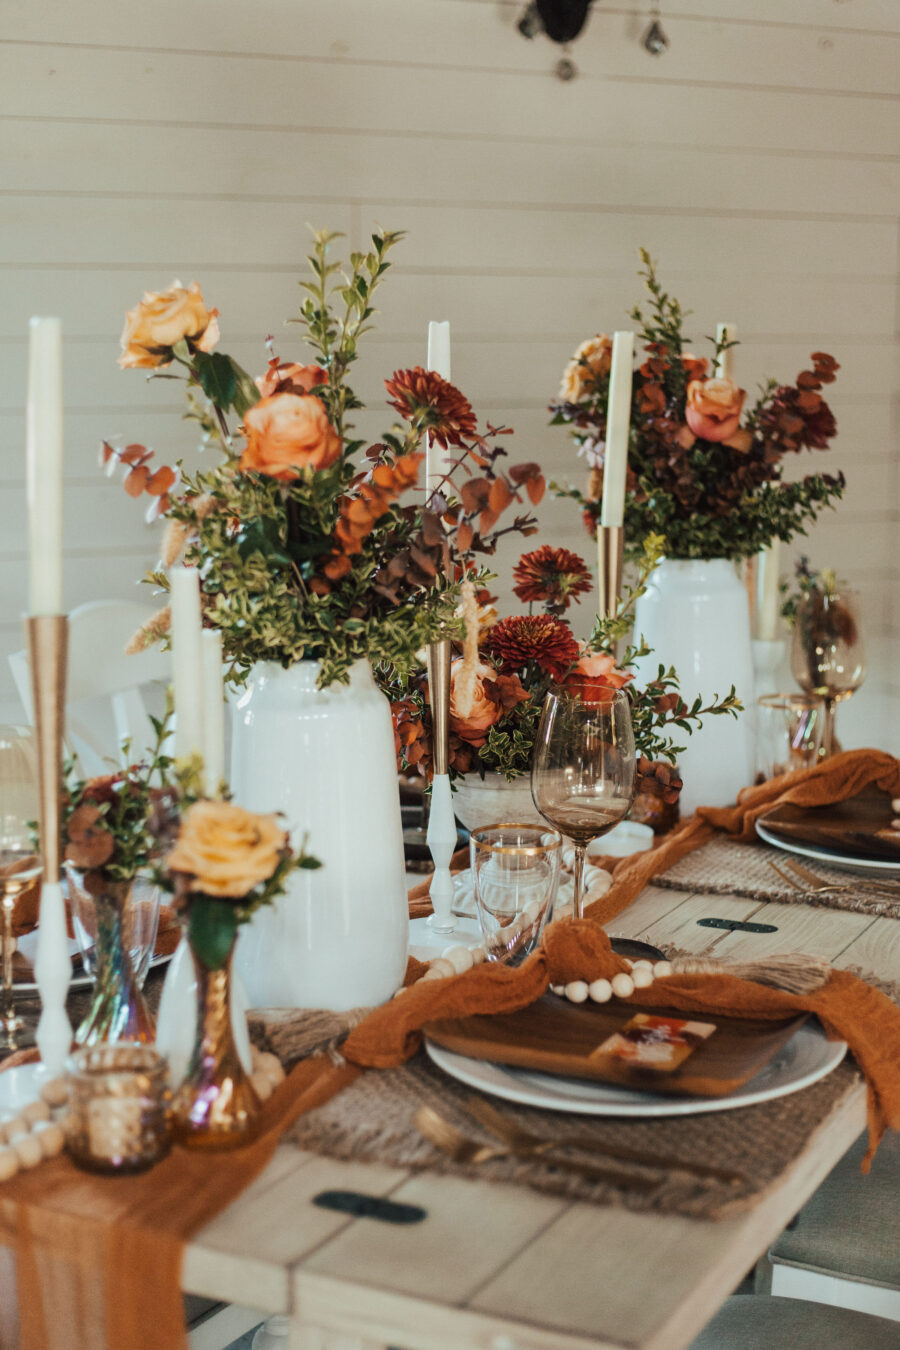 Wedding centerpieces: Bright Bohemian Photo Shoot from Ina J Designs